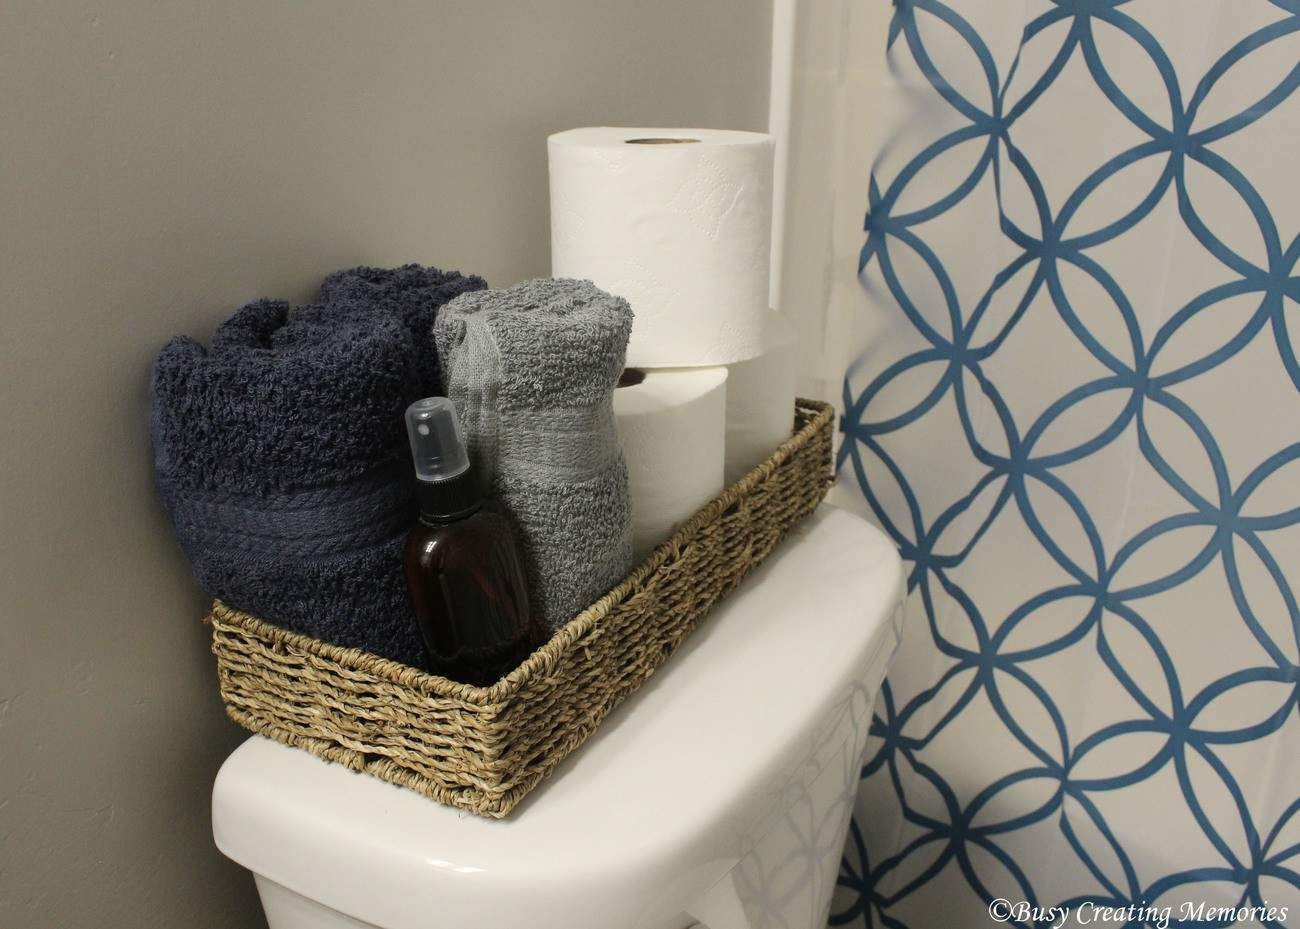 bathroom-essentials-are-ready-and-available-for-guests